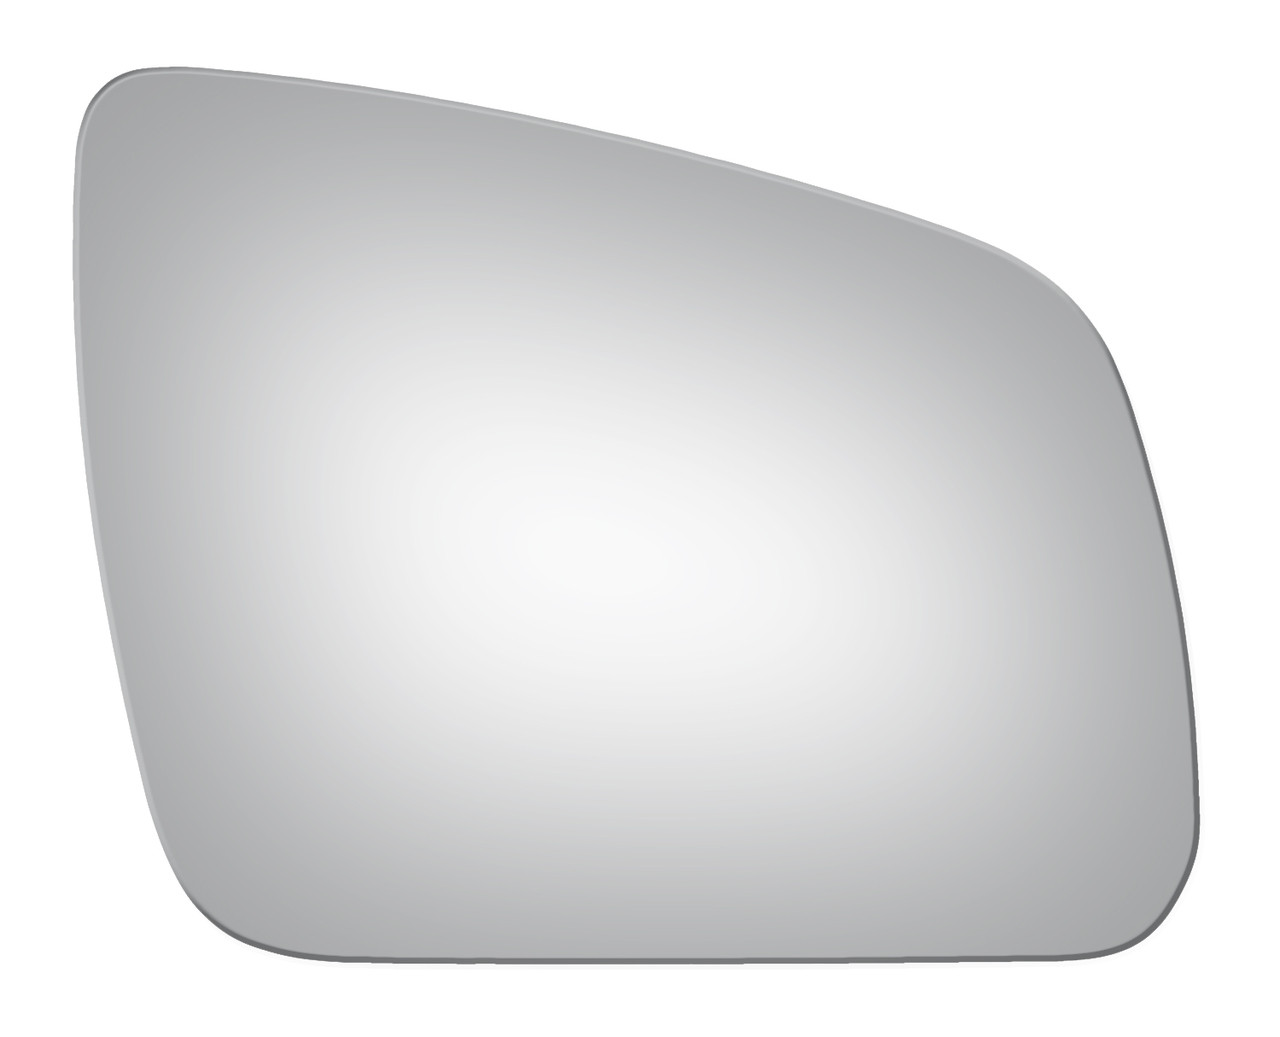 2014 mercedes benz c250 passenger side mirror glass 5333 for Mercedes benz c300 side mirror glass